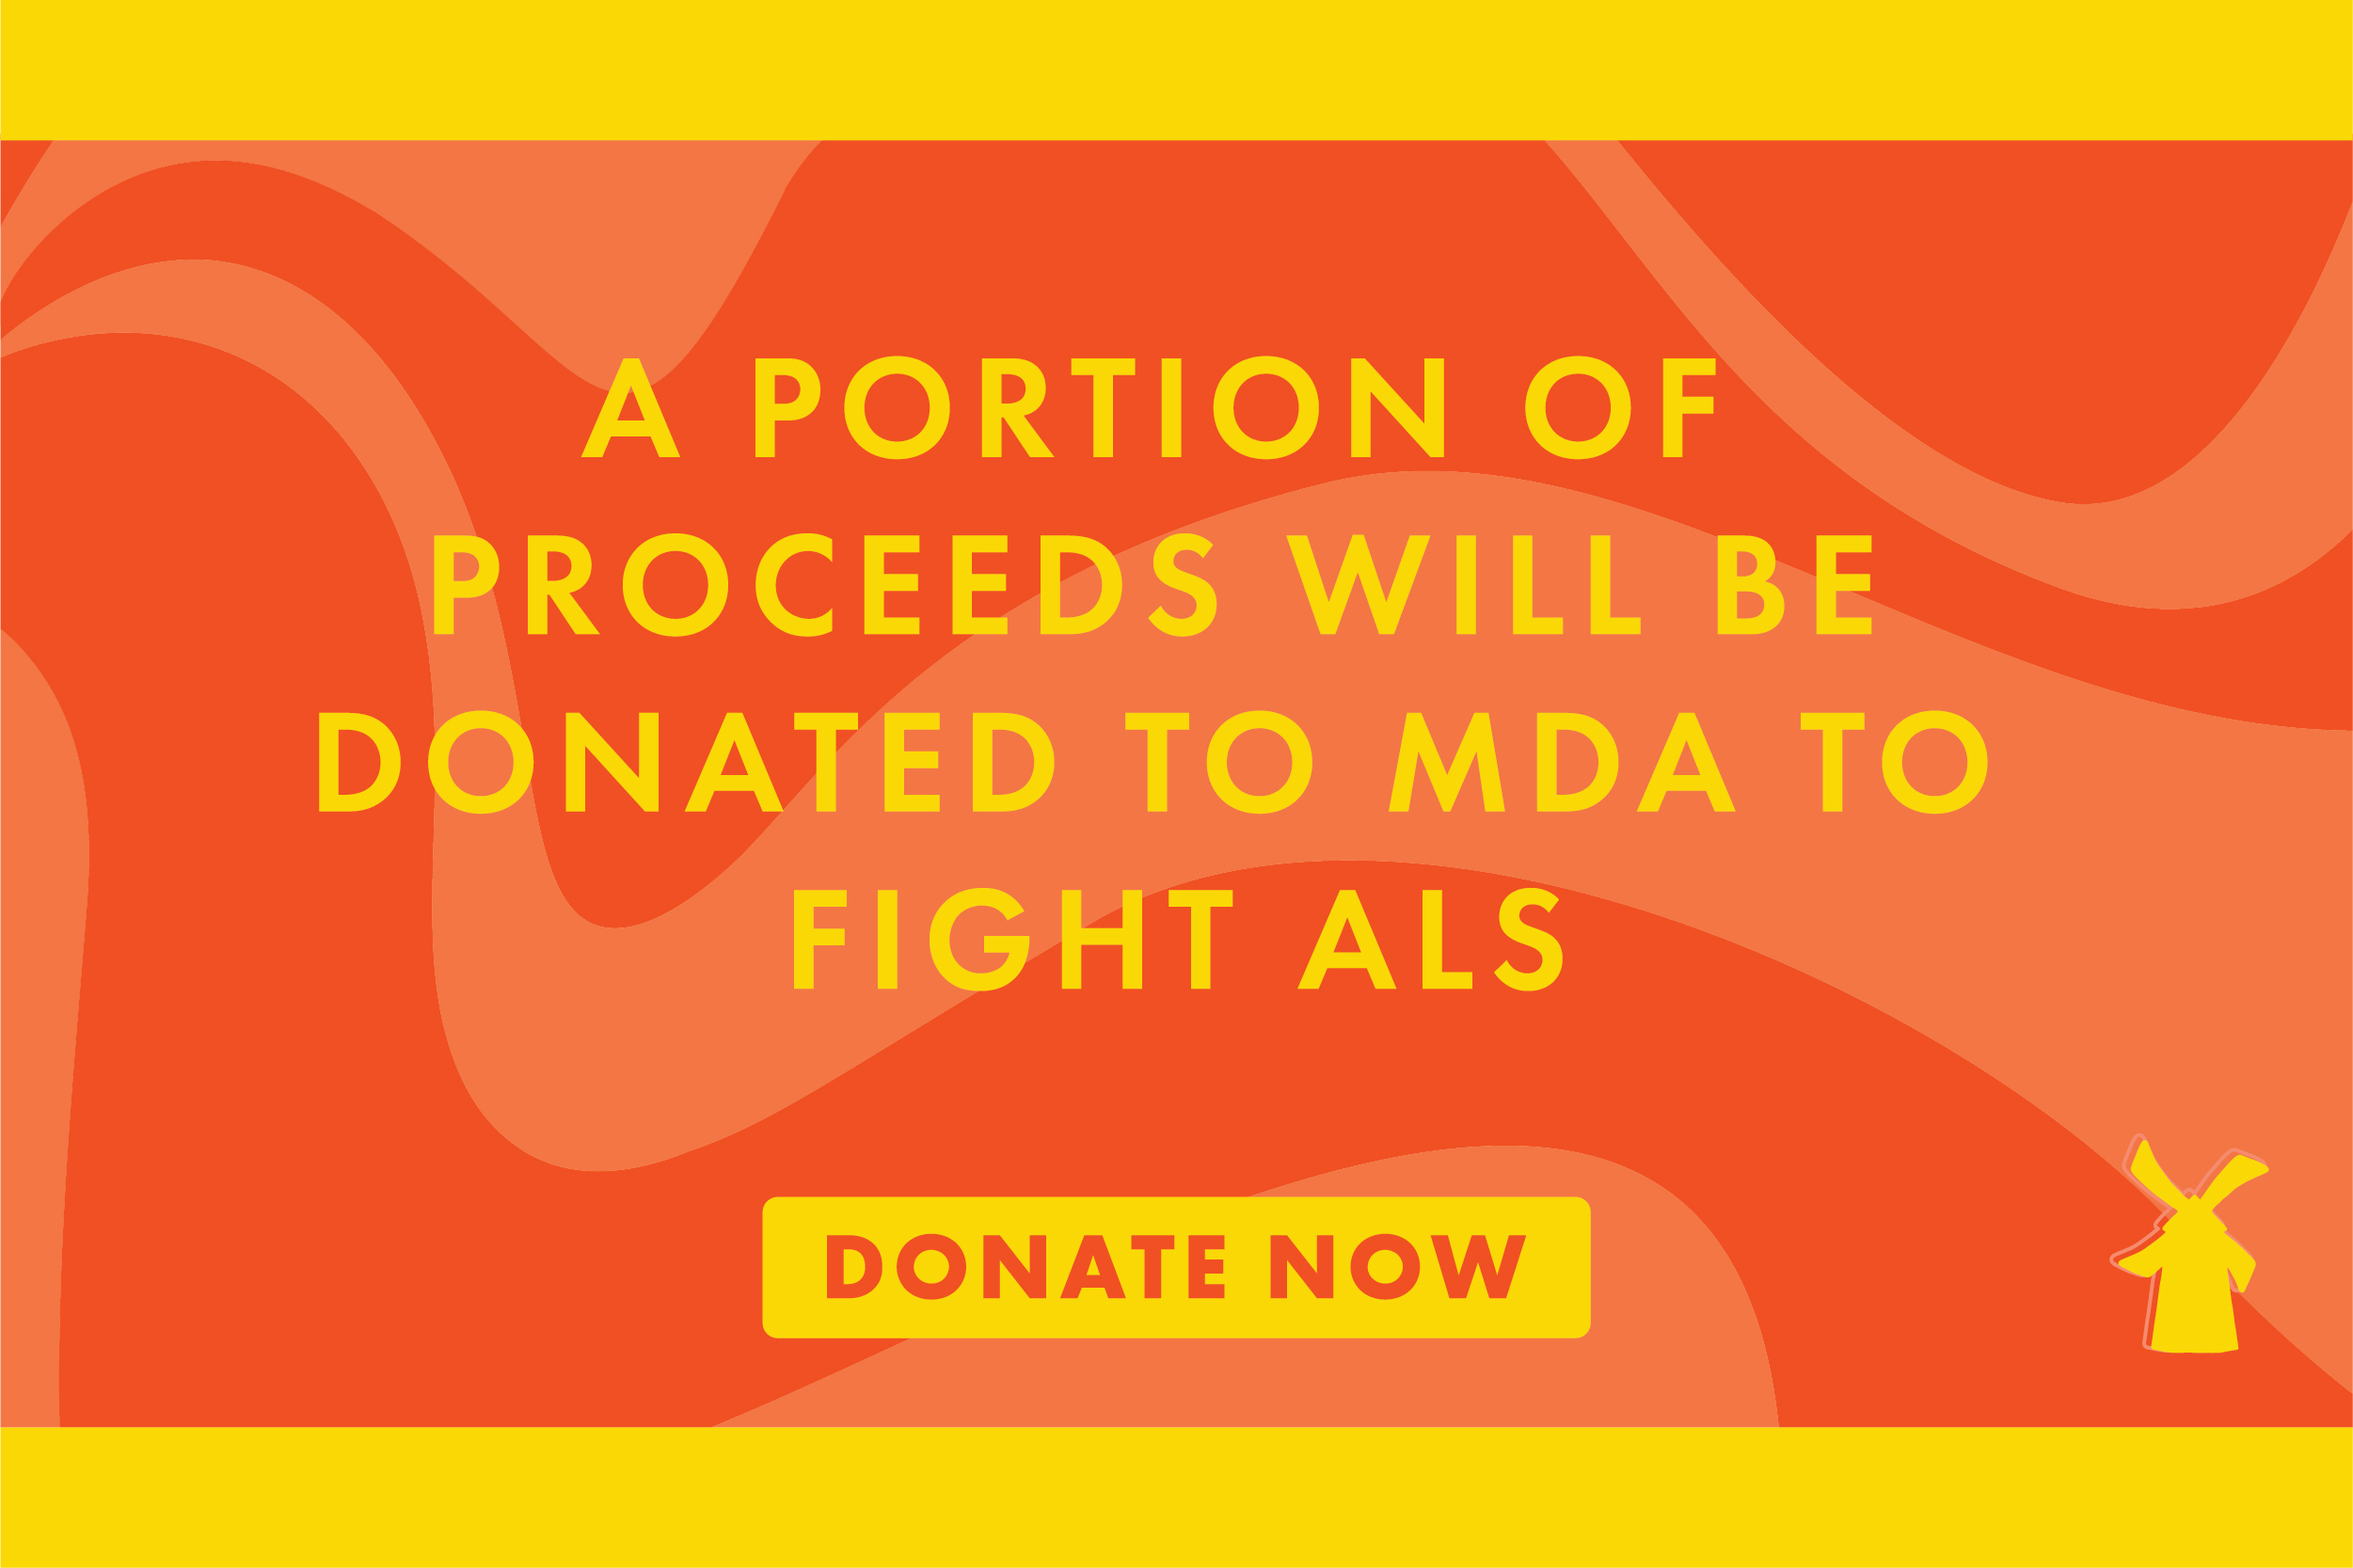 A portion of proceeds will be donated to MDA to fight ALS. Donate Now.